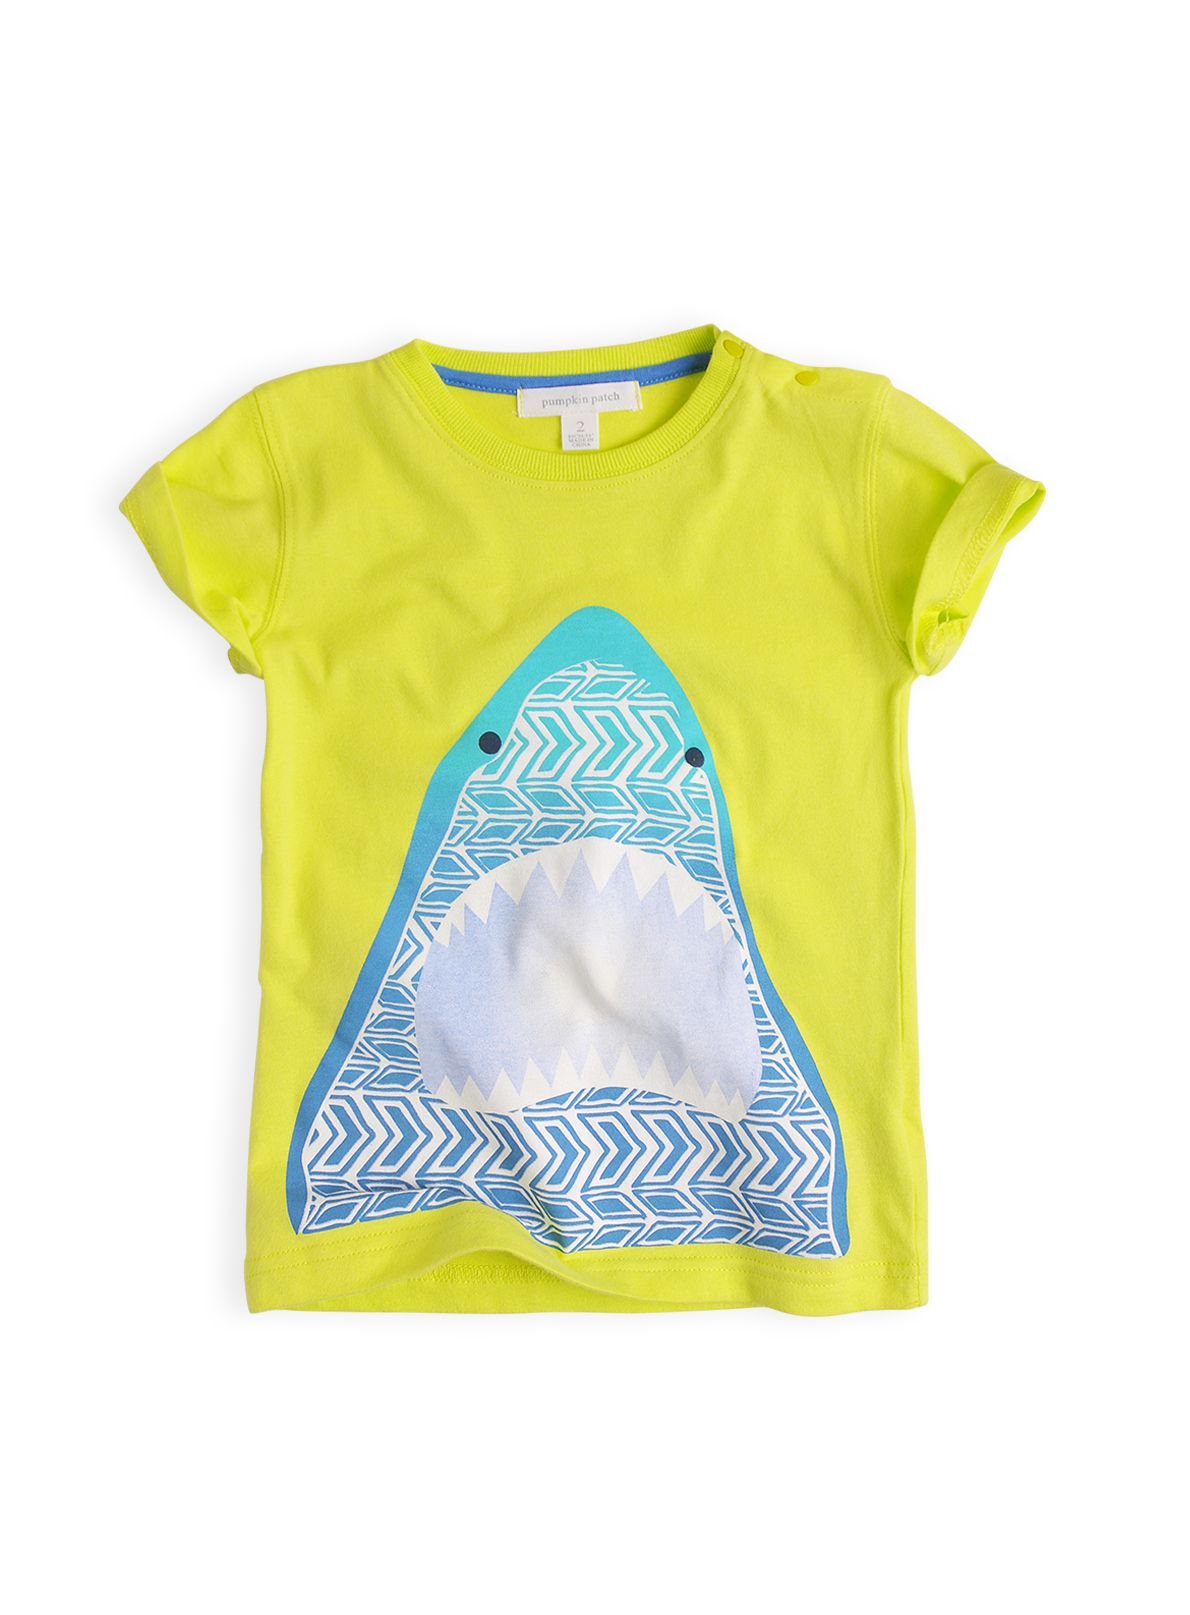 Boys Aztec shark t-shirt